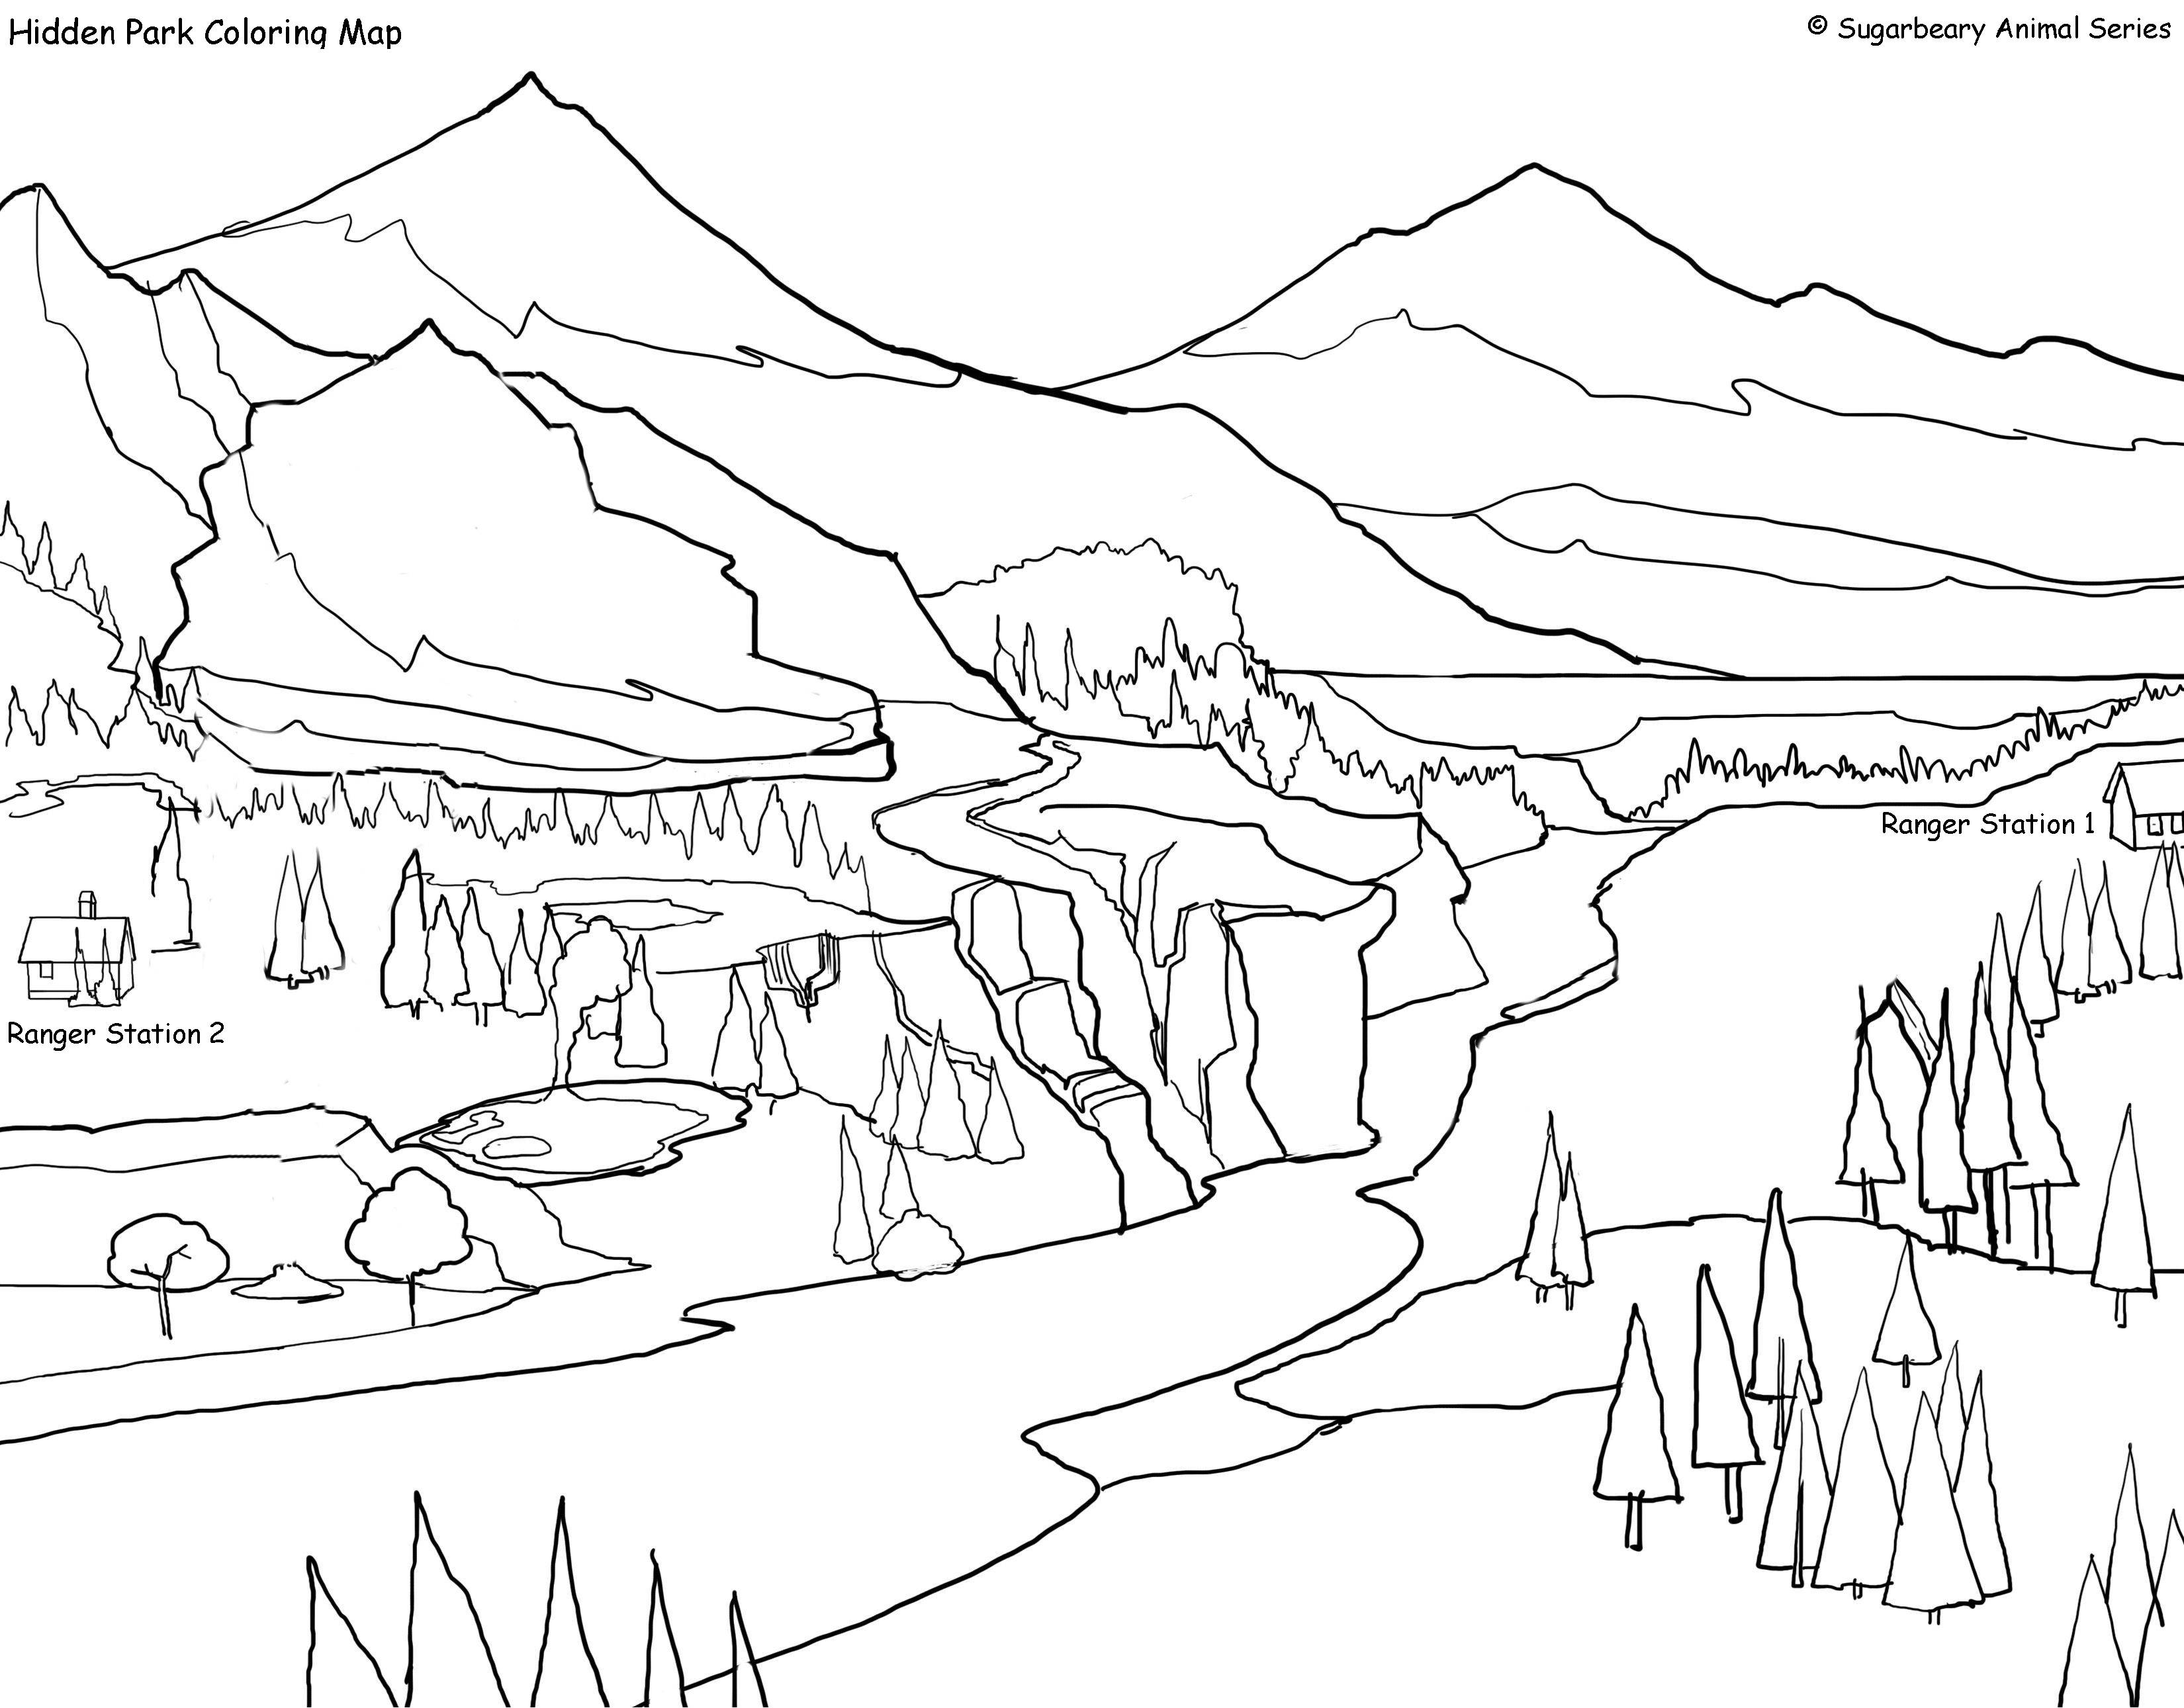 yellowstone national park coloring pages yellowstone coloring download yellowstone coloring for yellowstone park pages coloring national